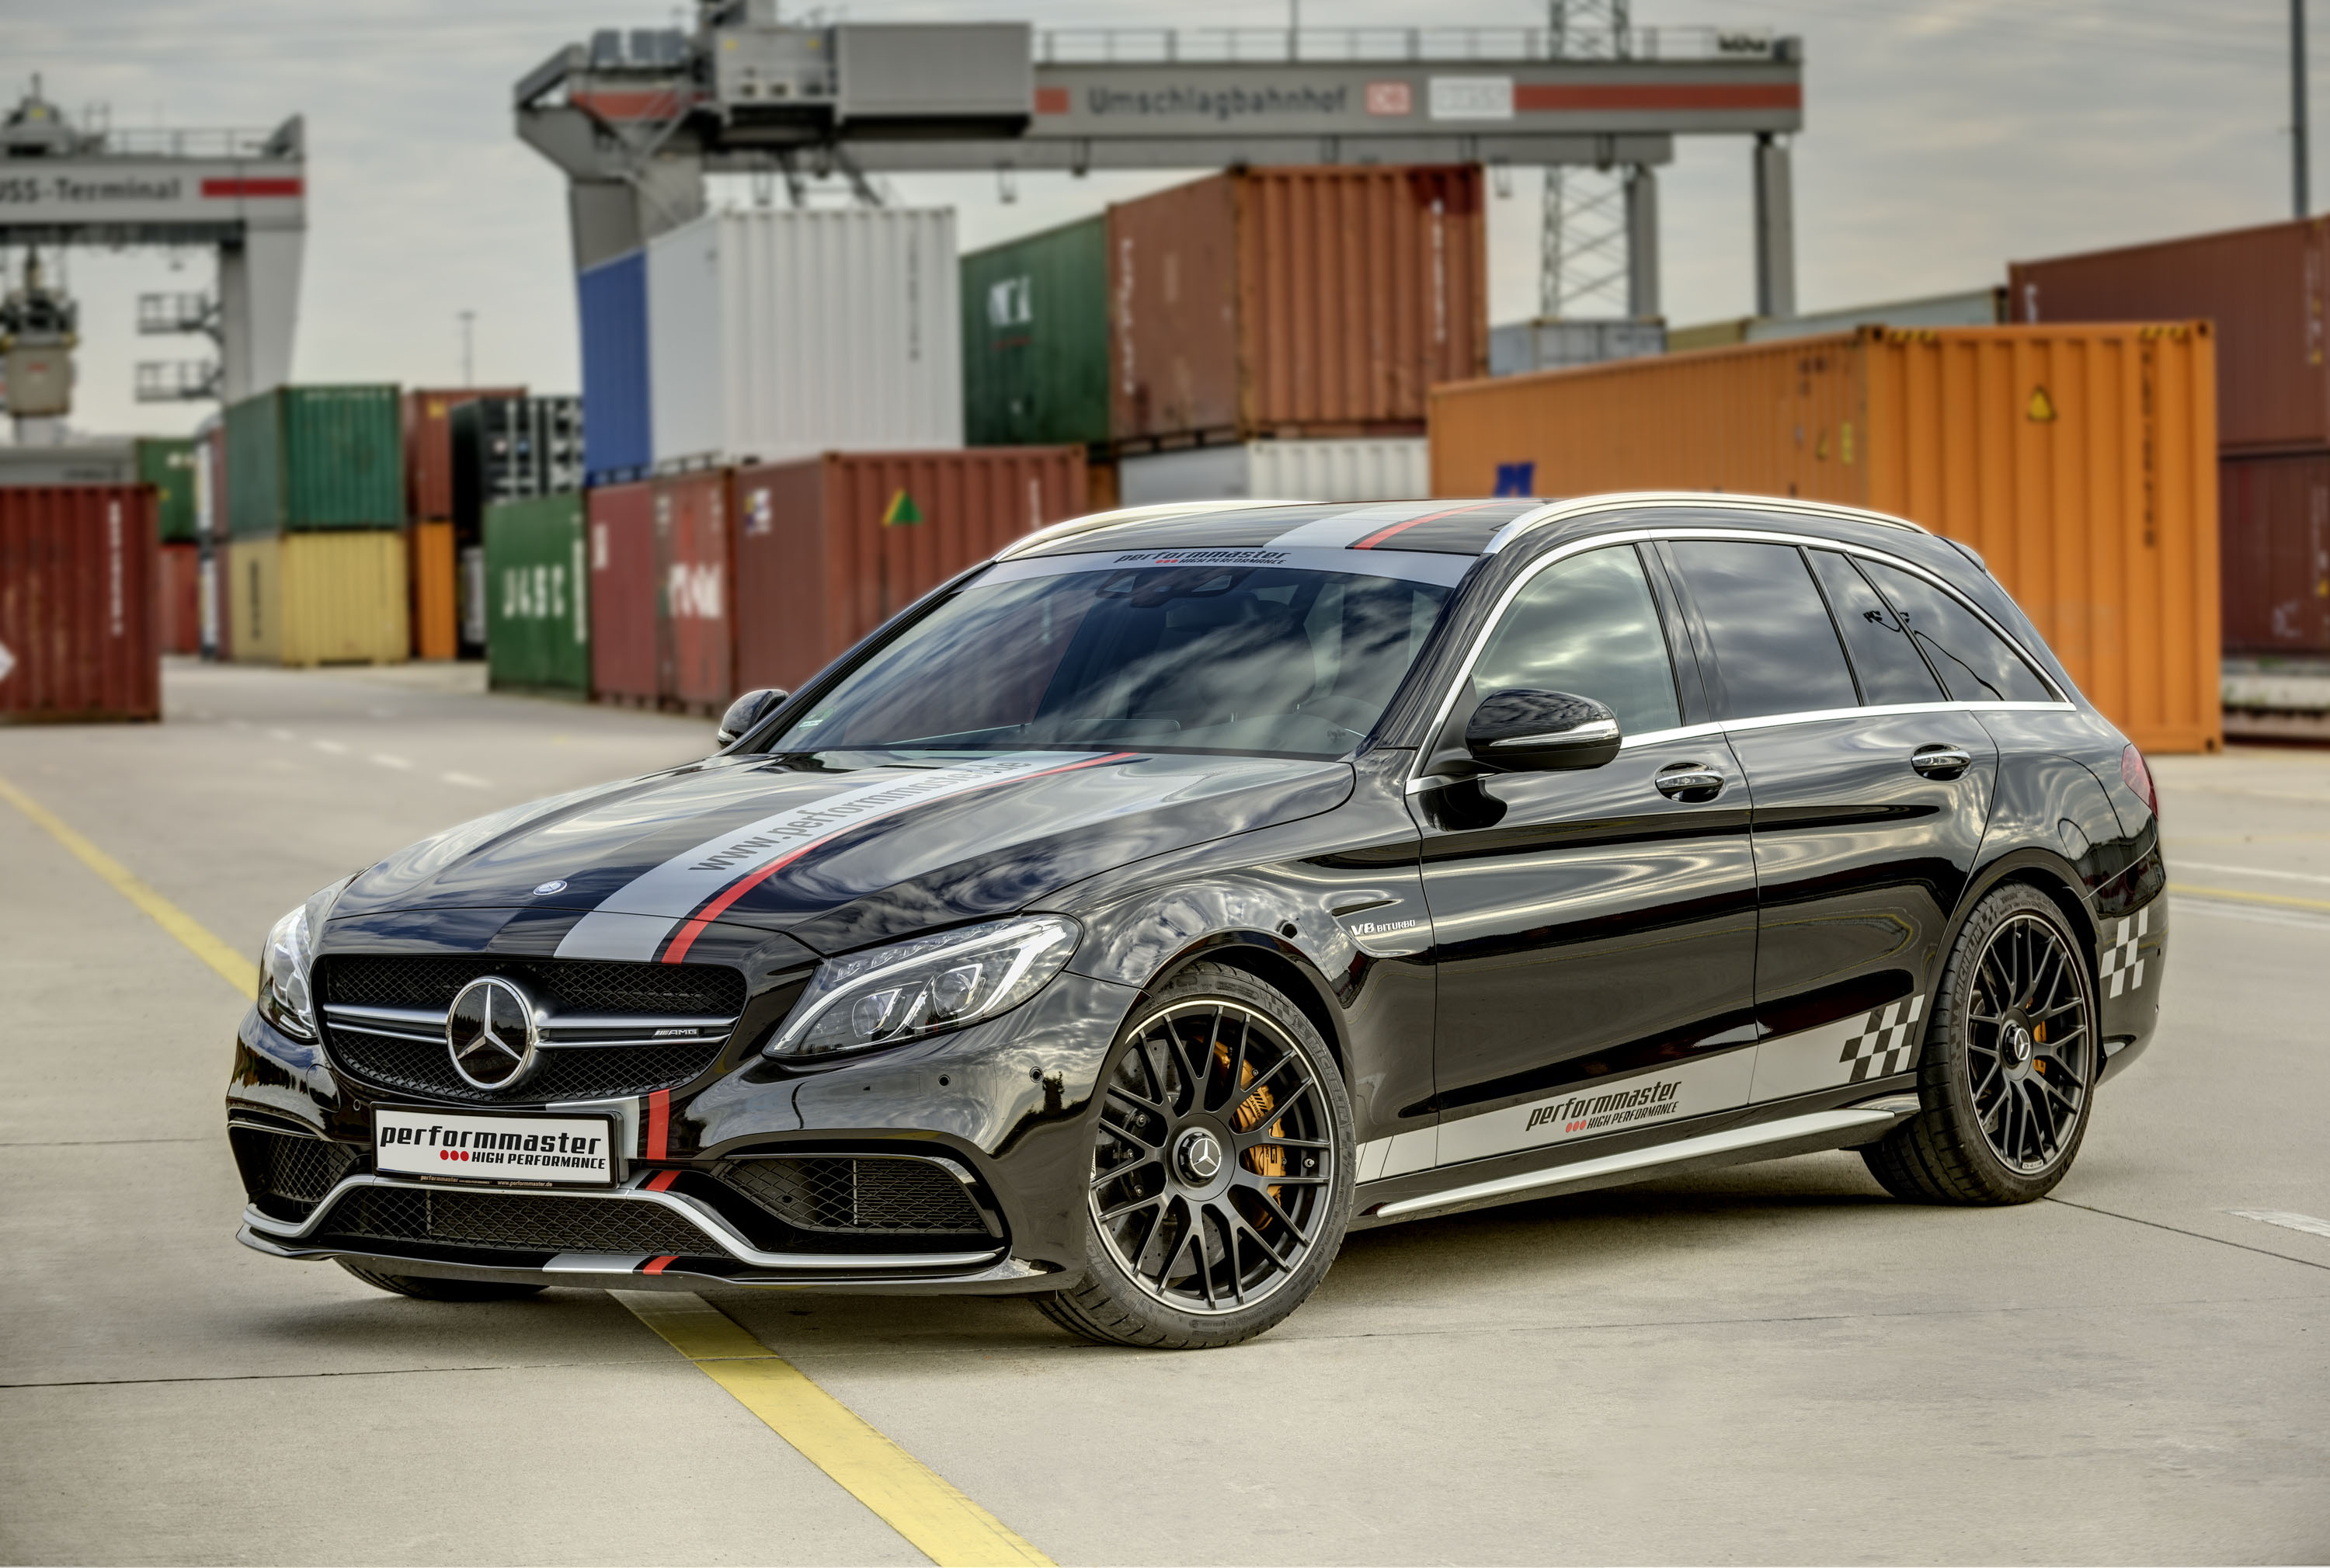 Performmaster gives mercedes amg c63 models 612 hp and for How much is a mercedes benz c63 amg